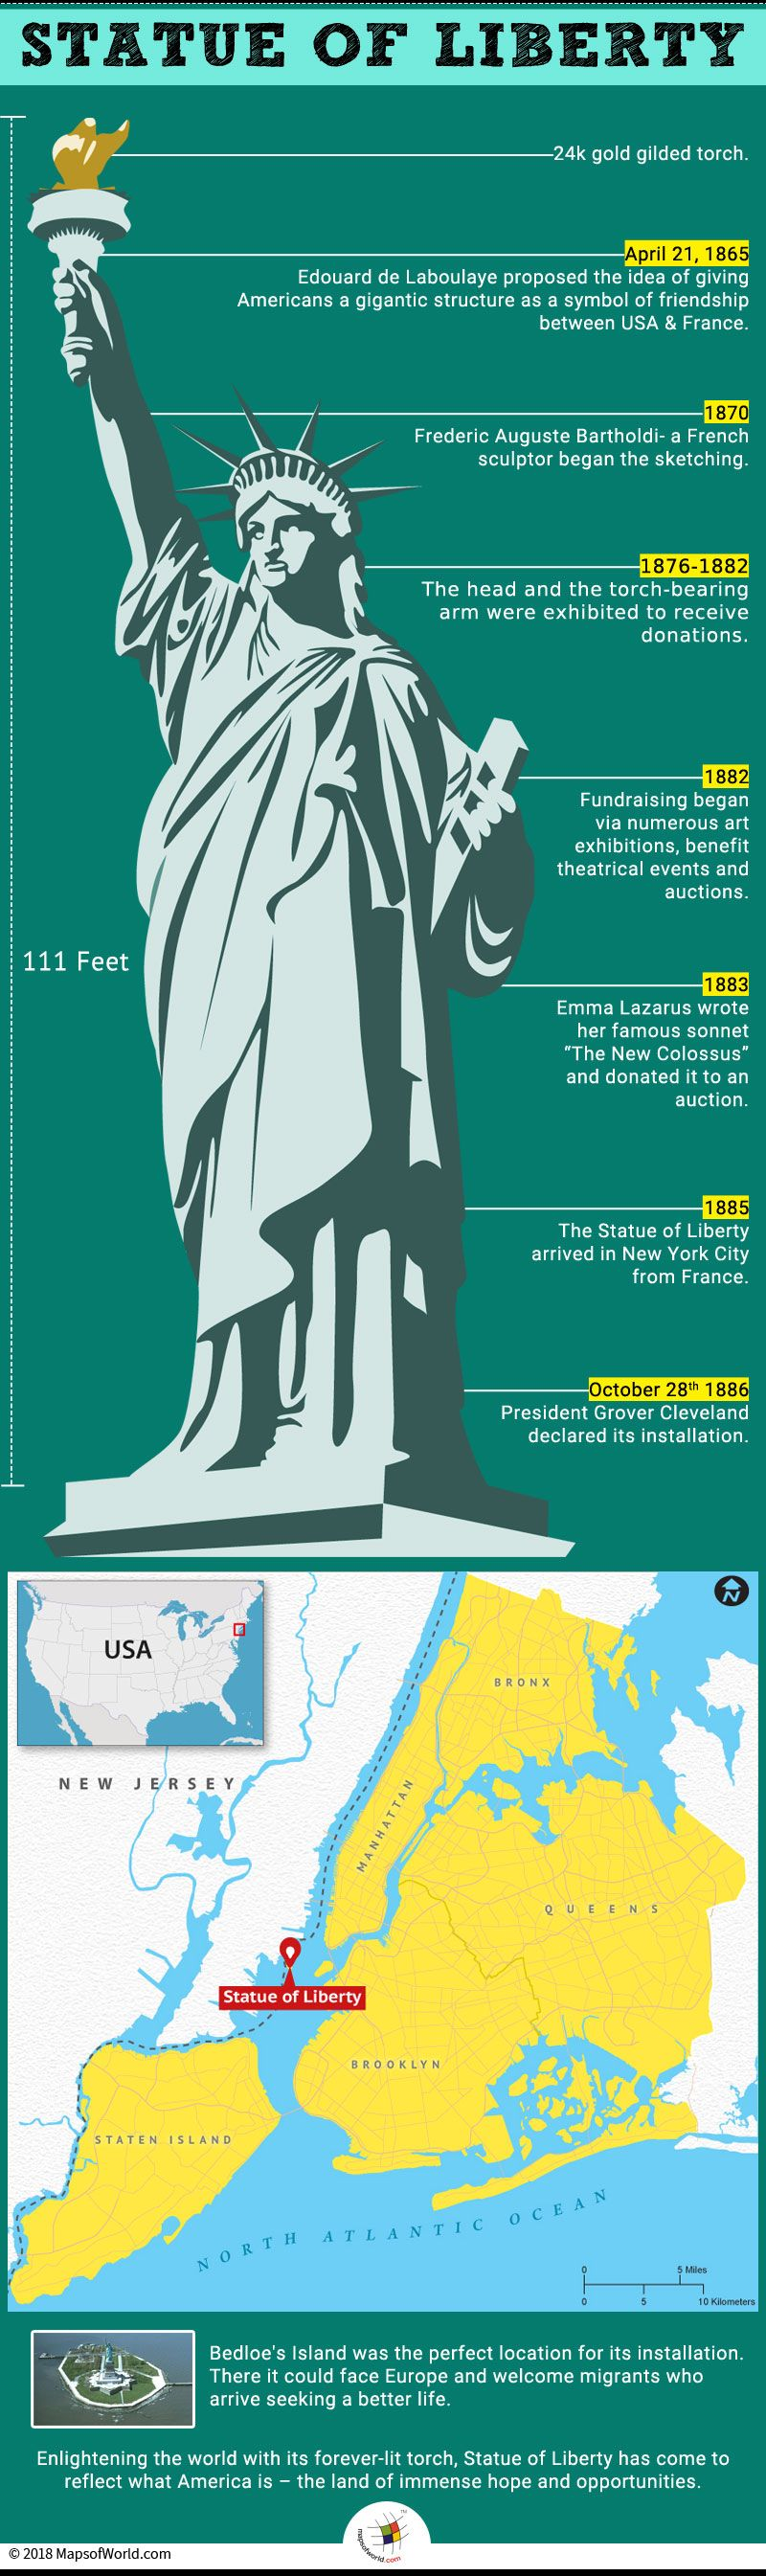 What is the History behind the Statue of Liberty? - Answer ...